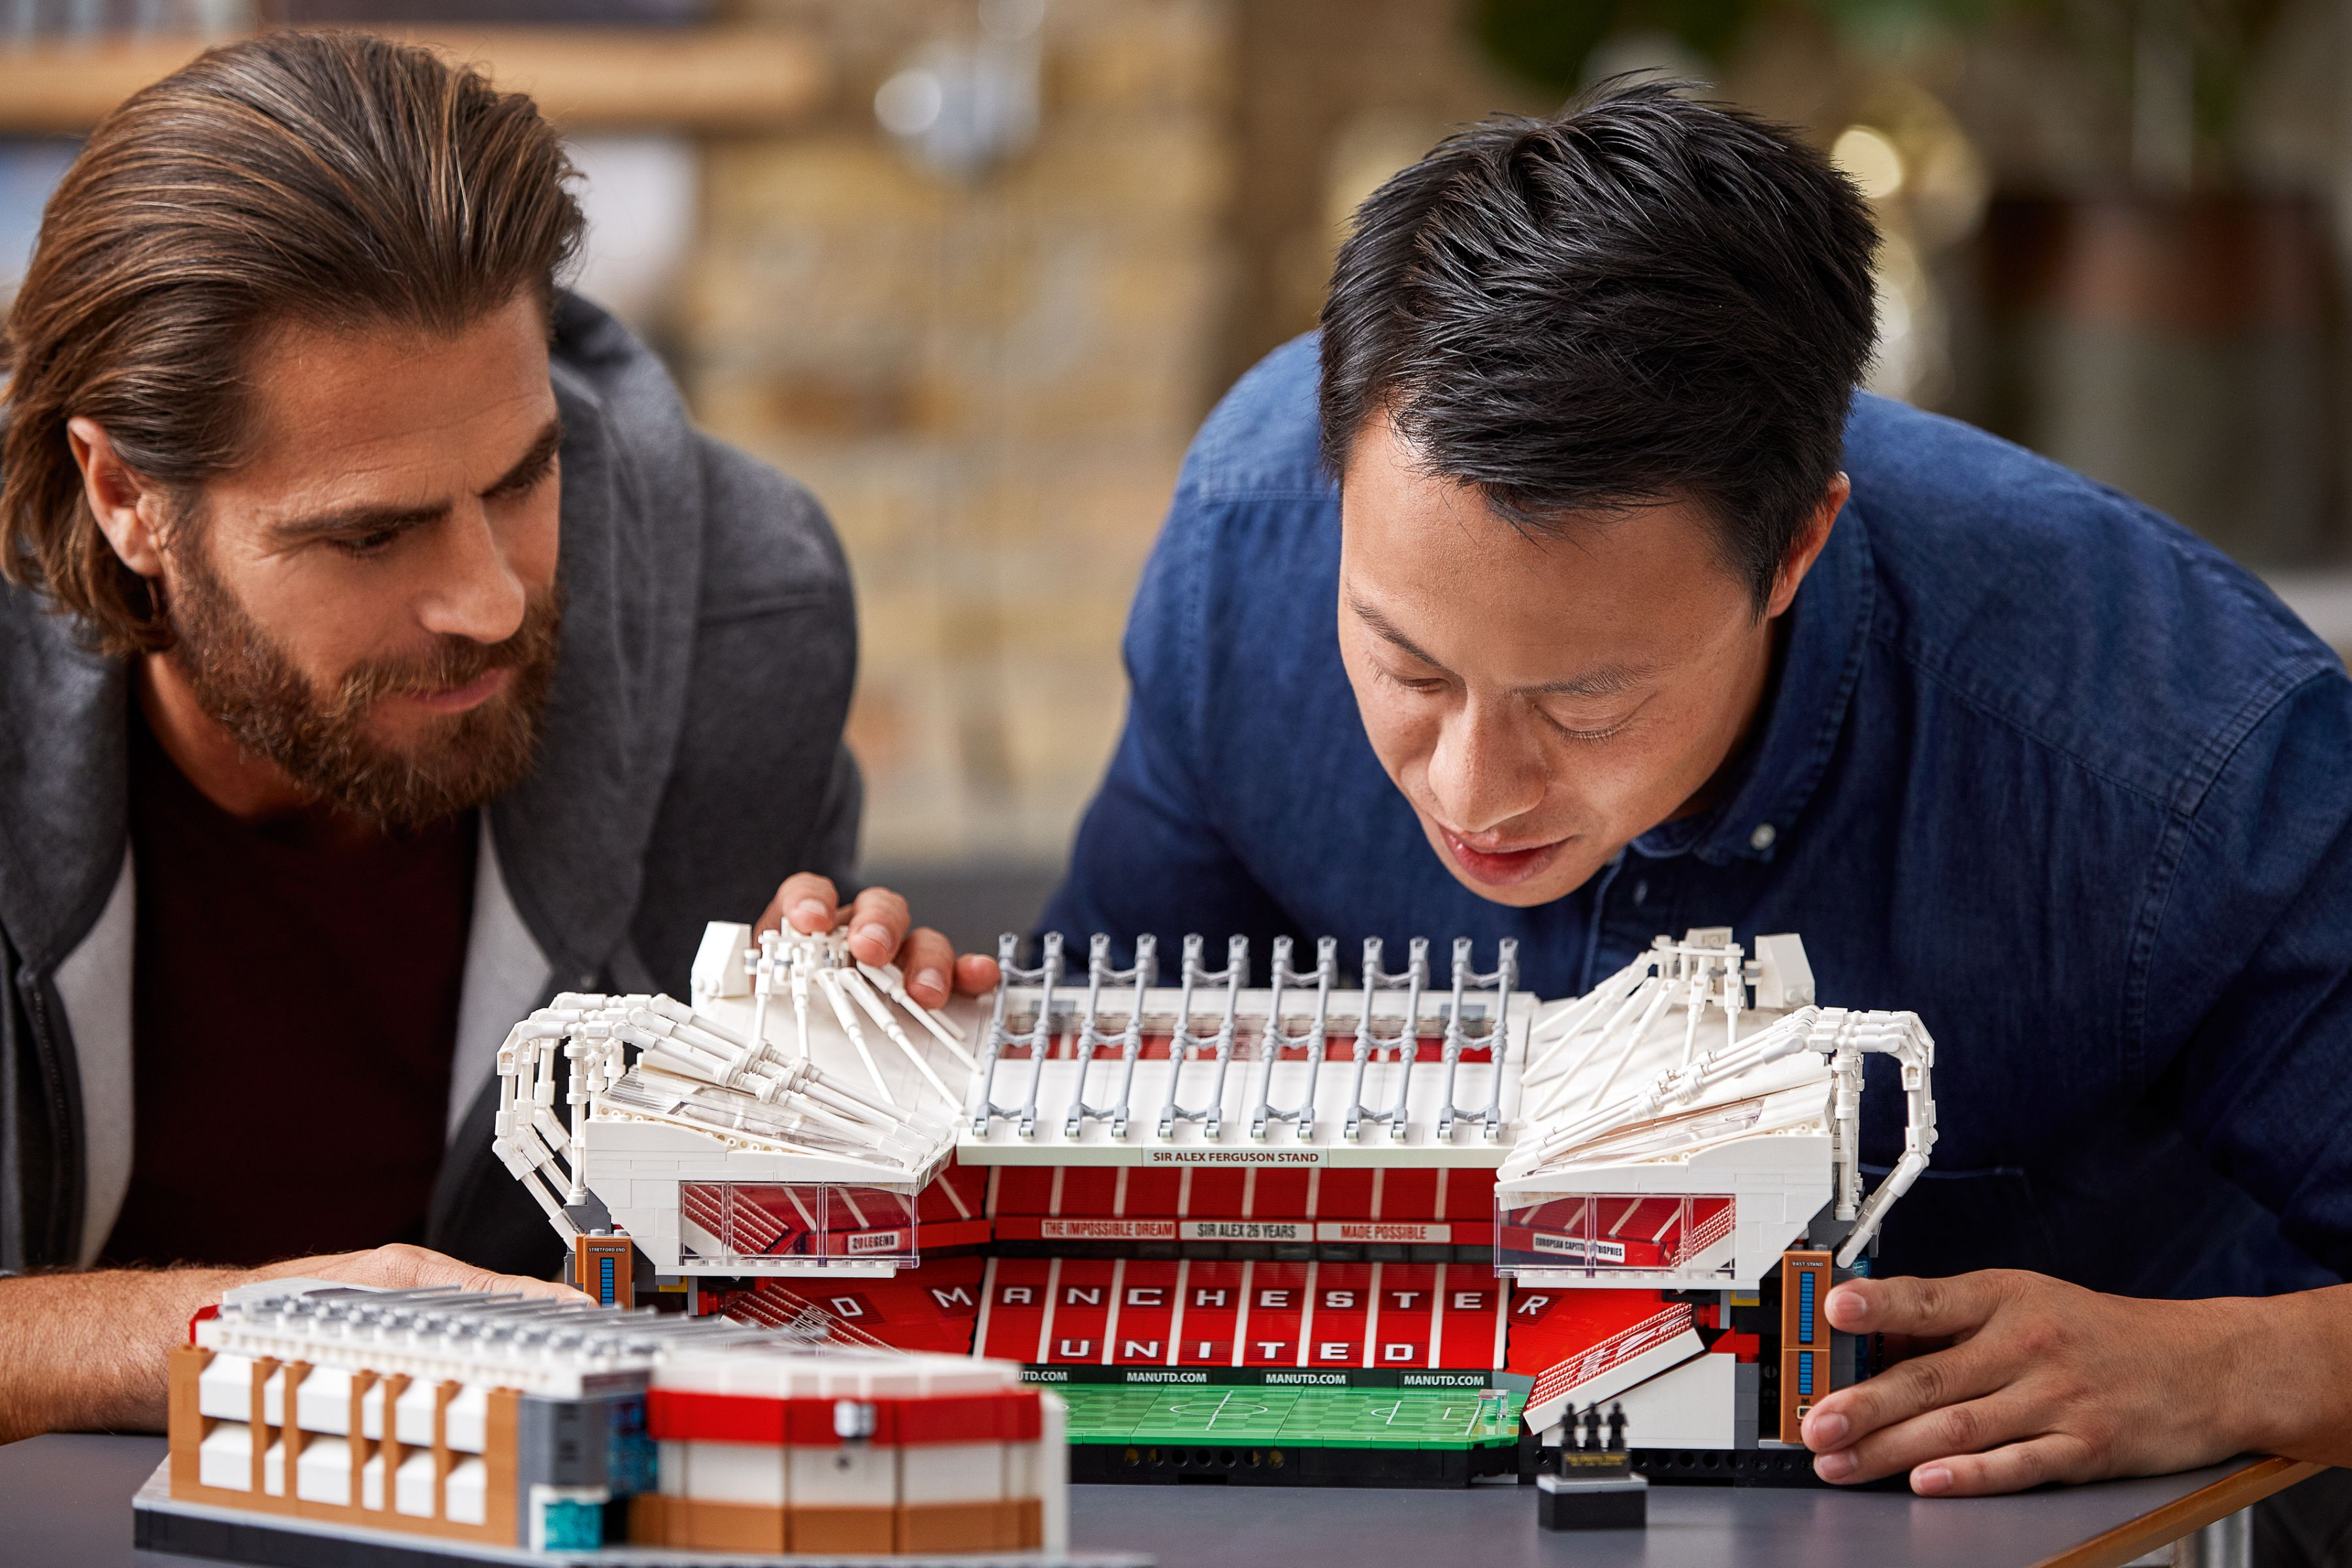 LEGO Advanced Models 10272 Old Trafford - Manchester United LEGO_10272_alt13.jpg